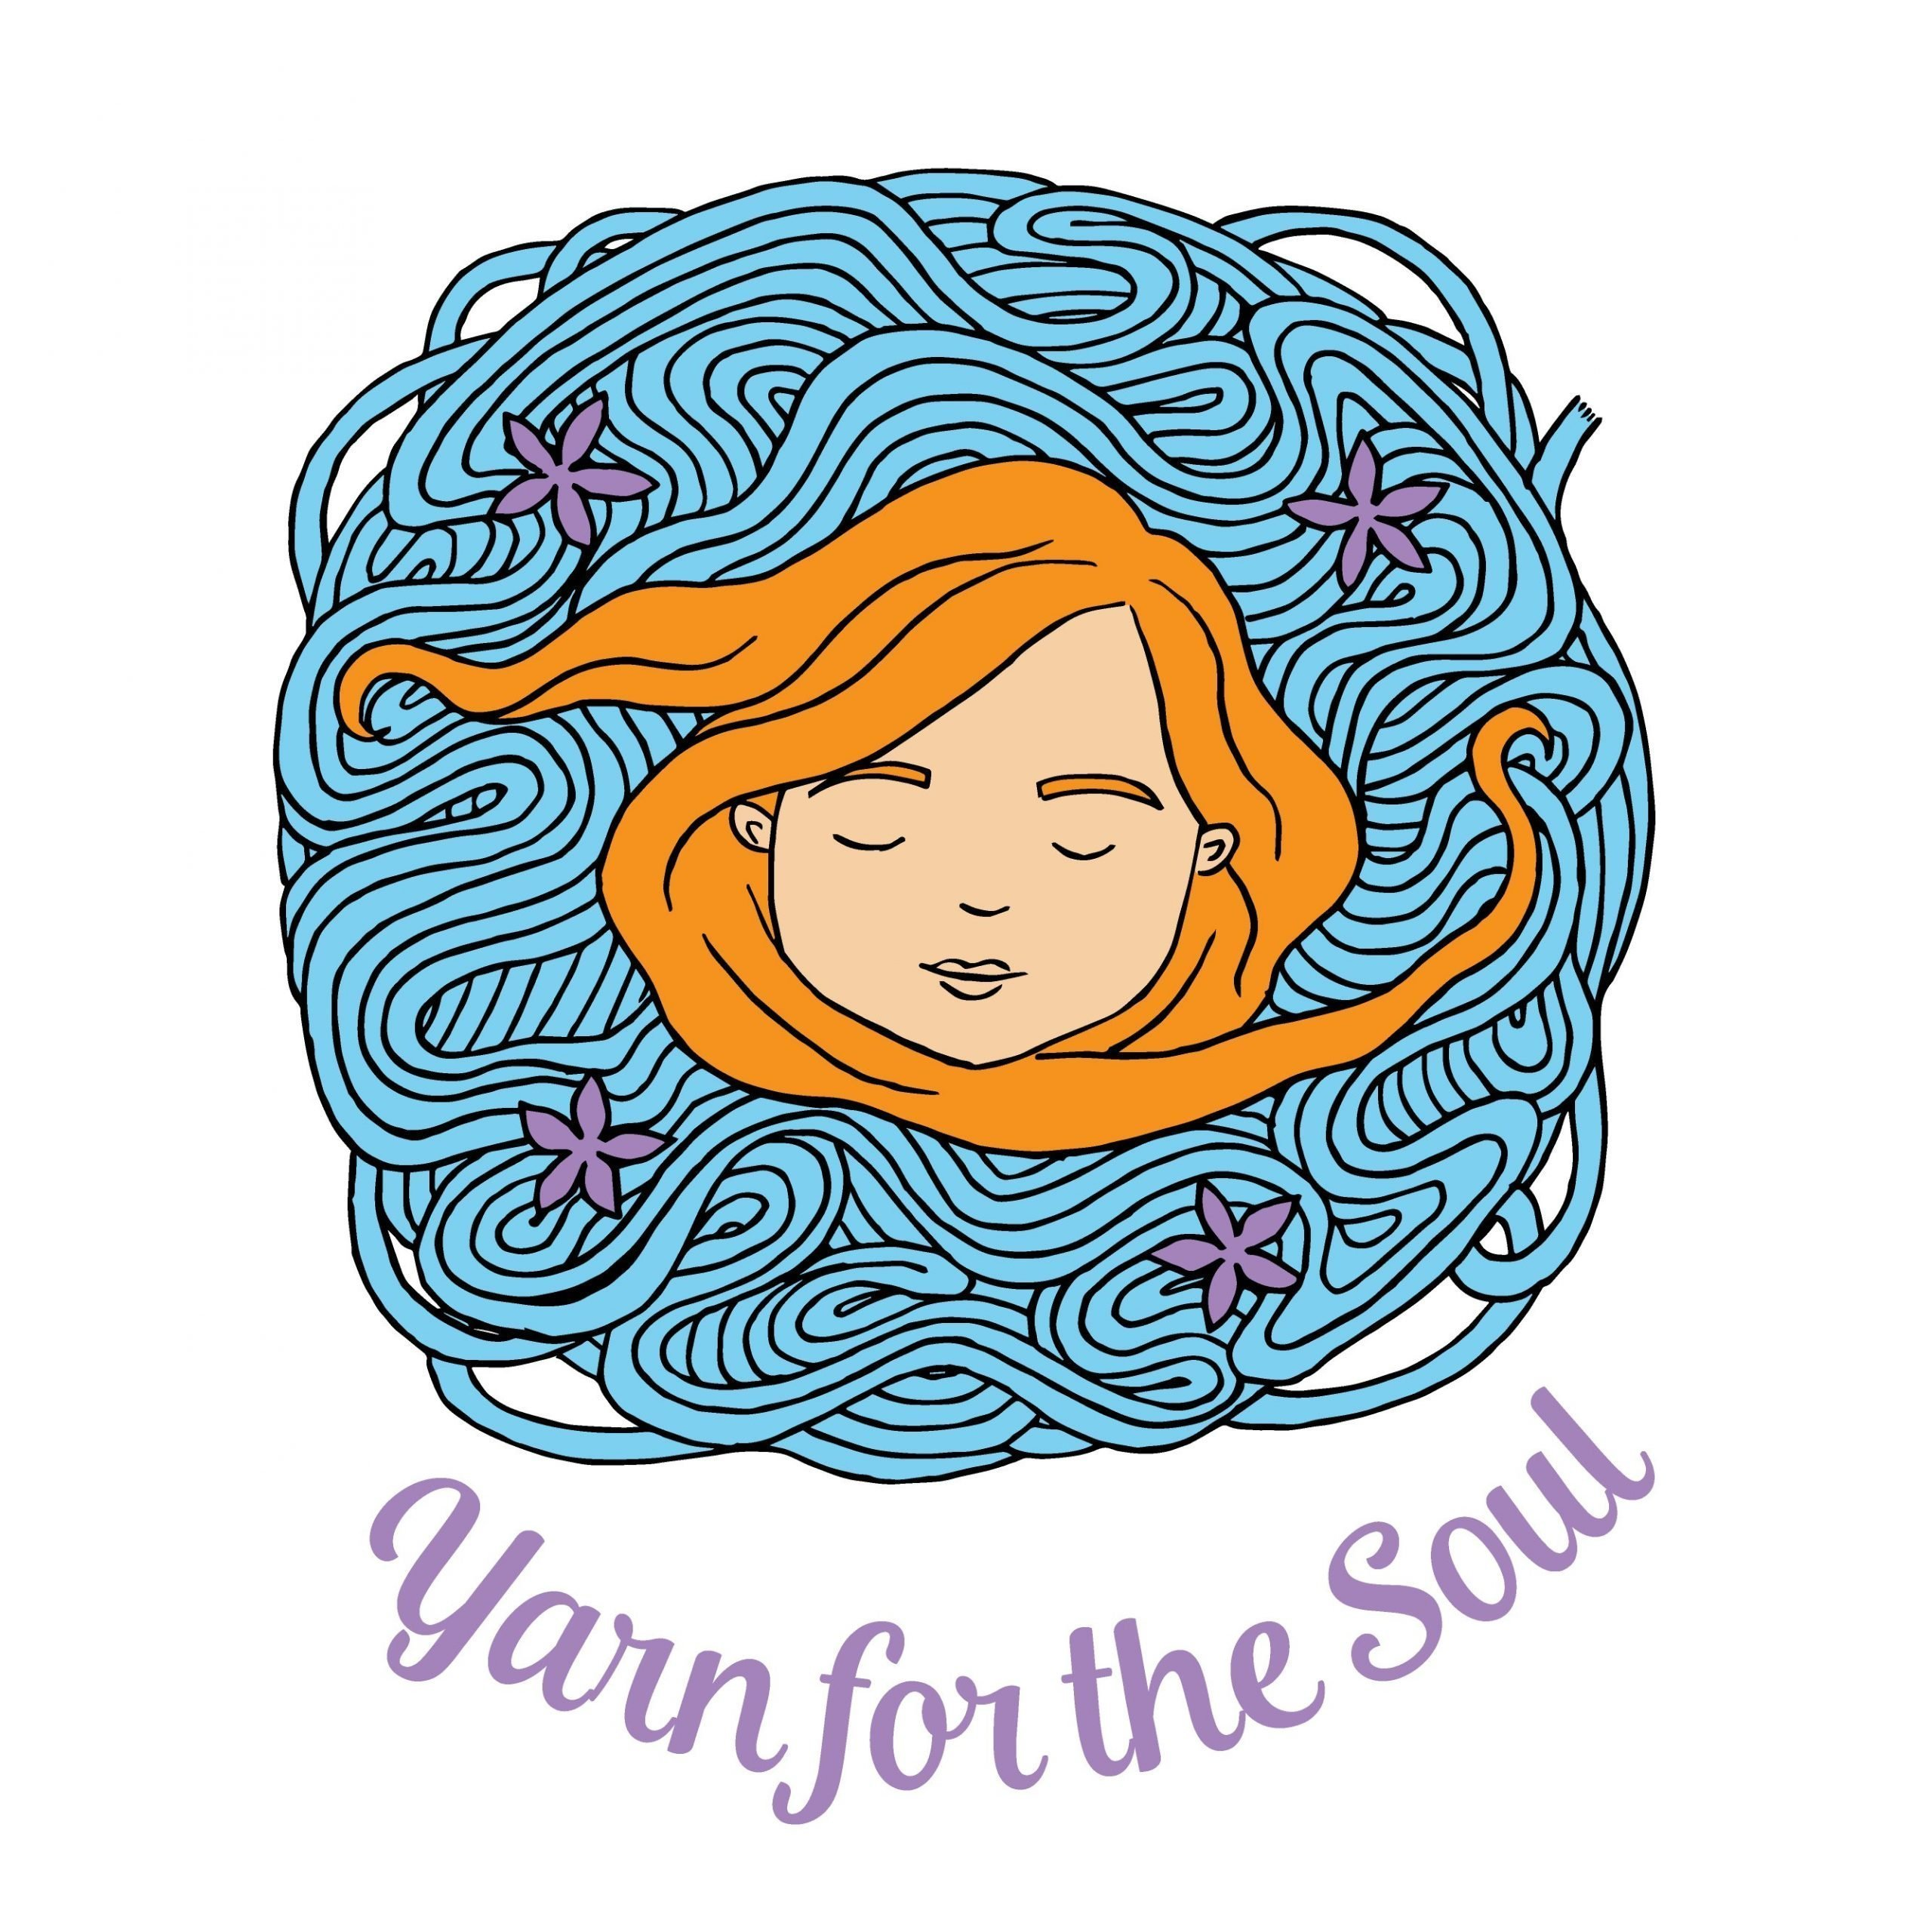 Yarn for the Soul